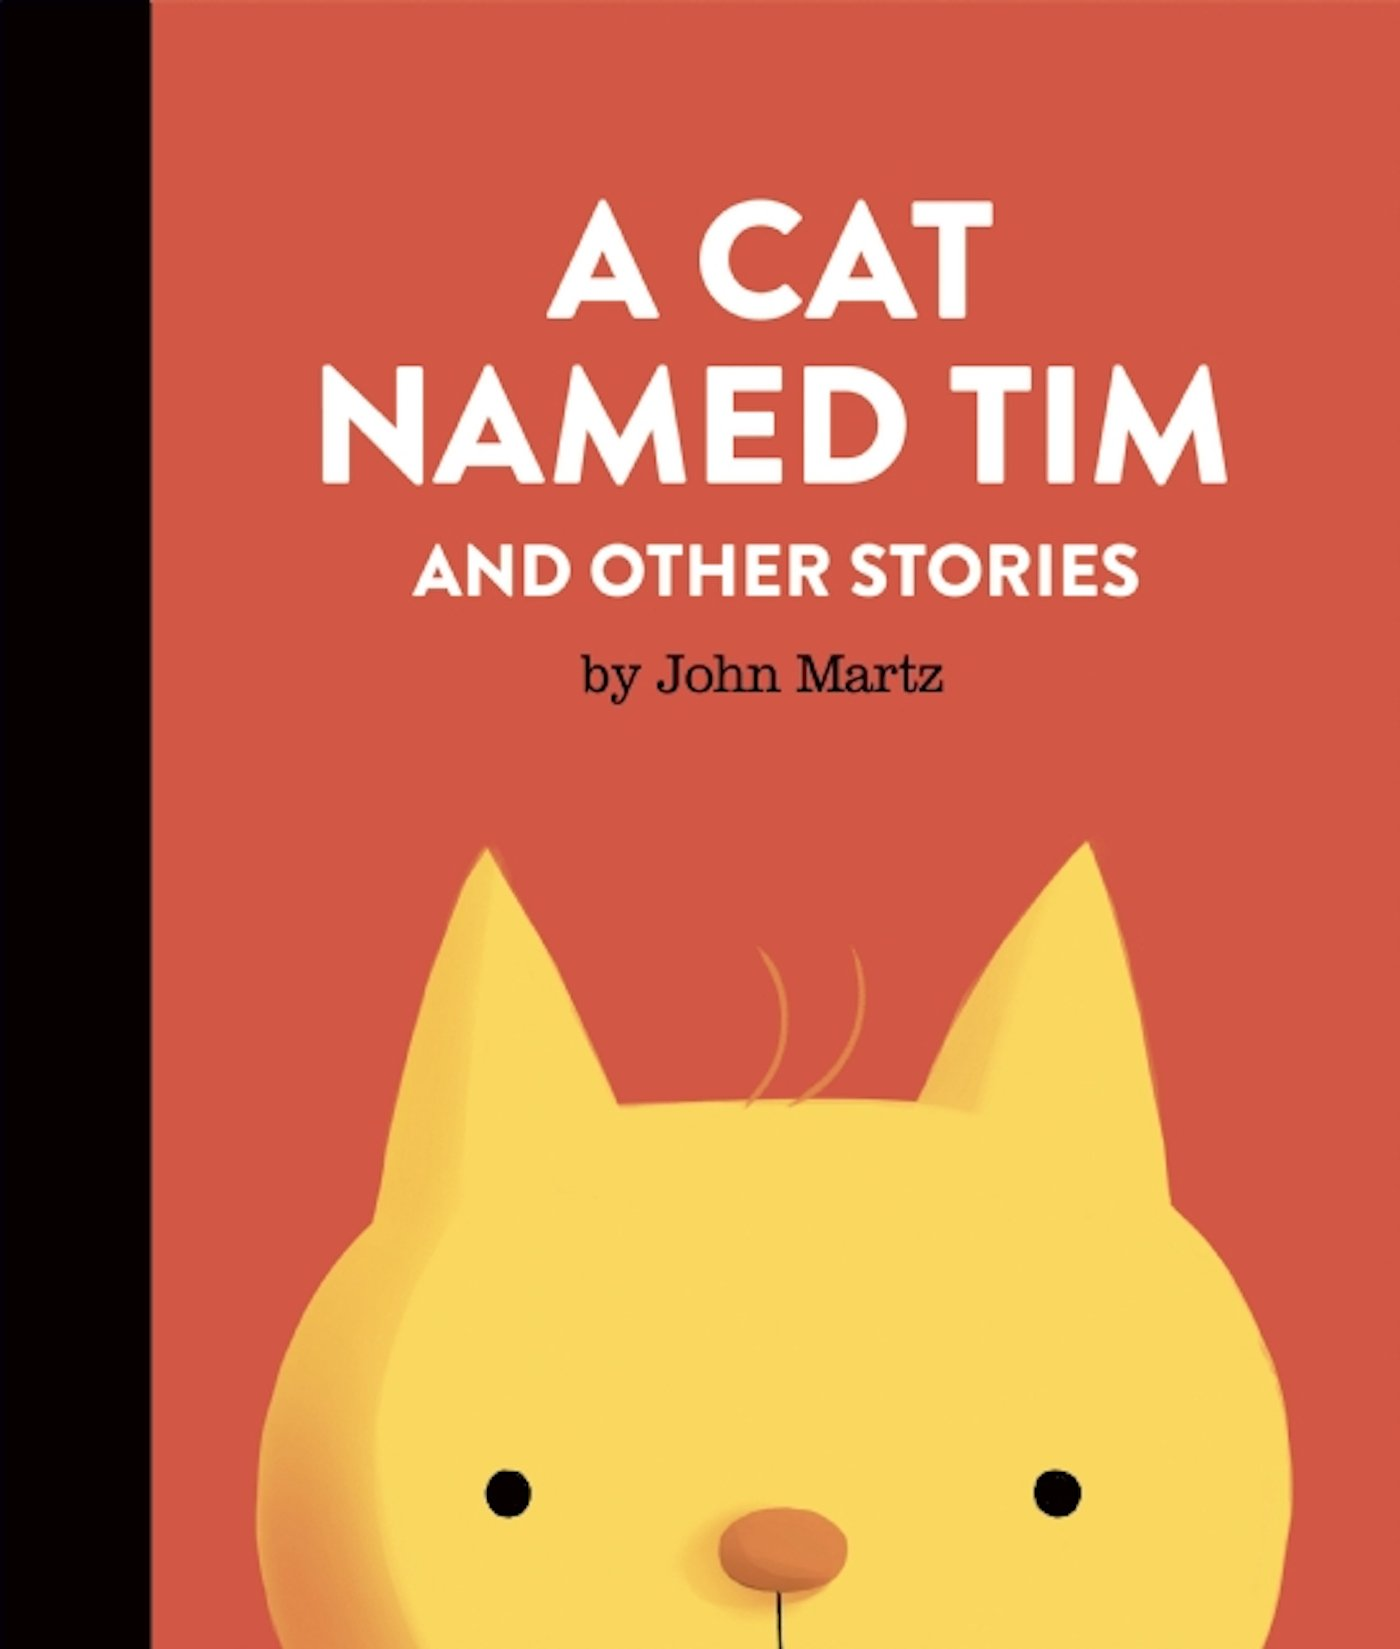 A Cat Named Tim And Other Stories: John Martz: 9781927668108: Amazon:  Books